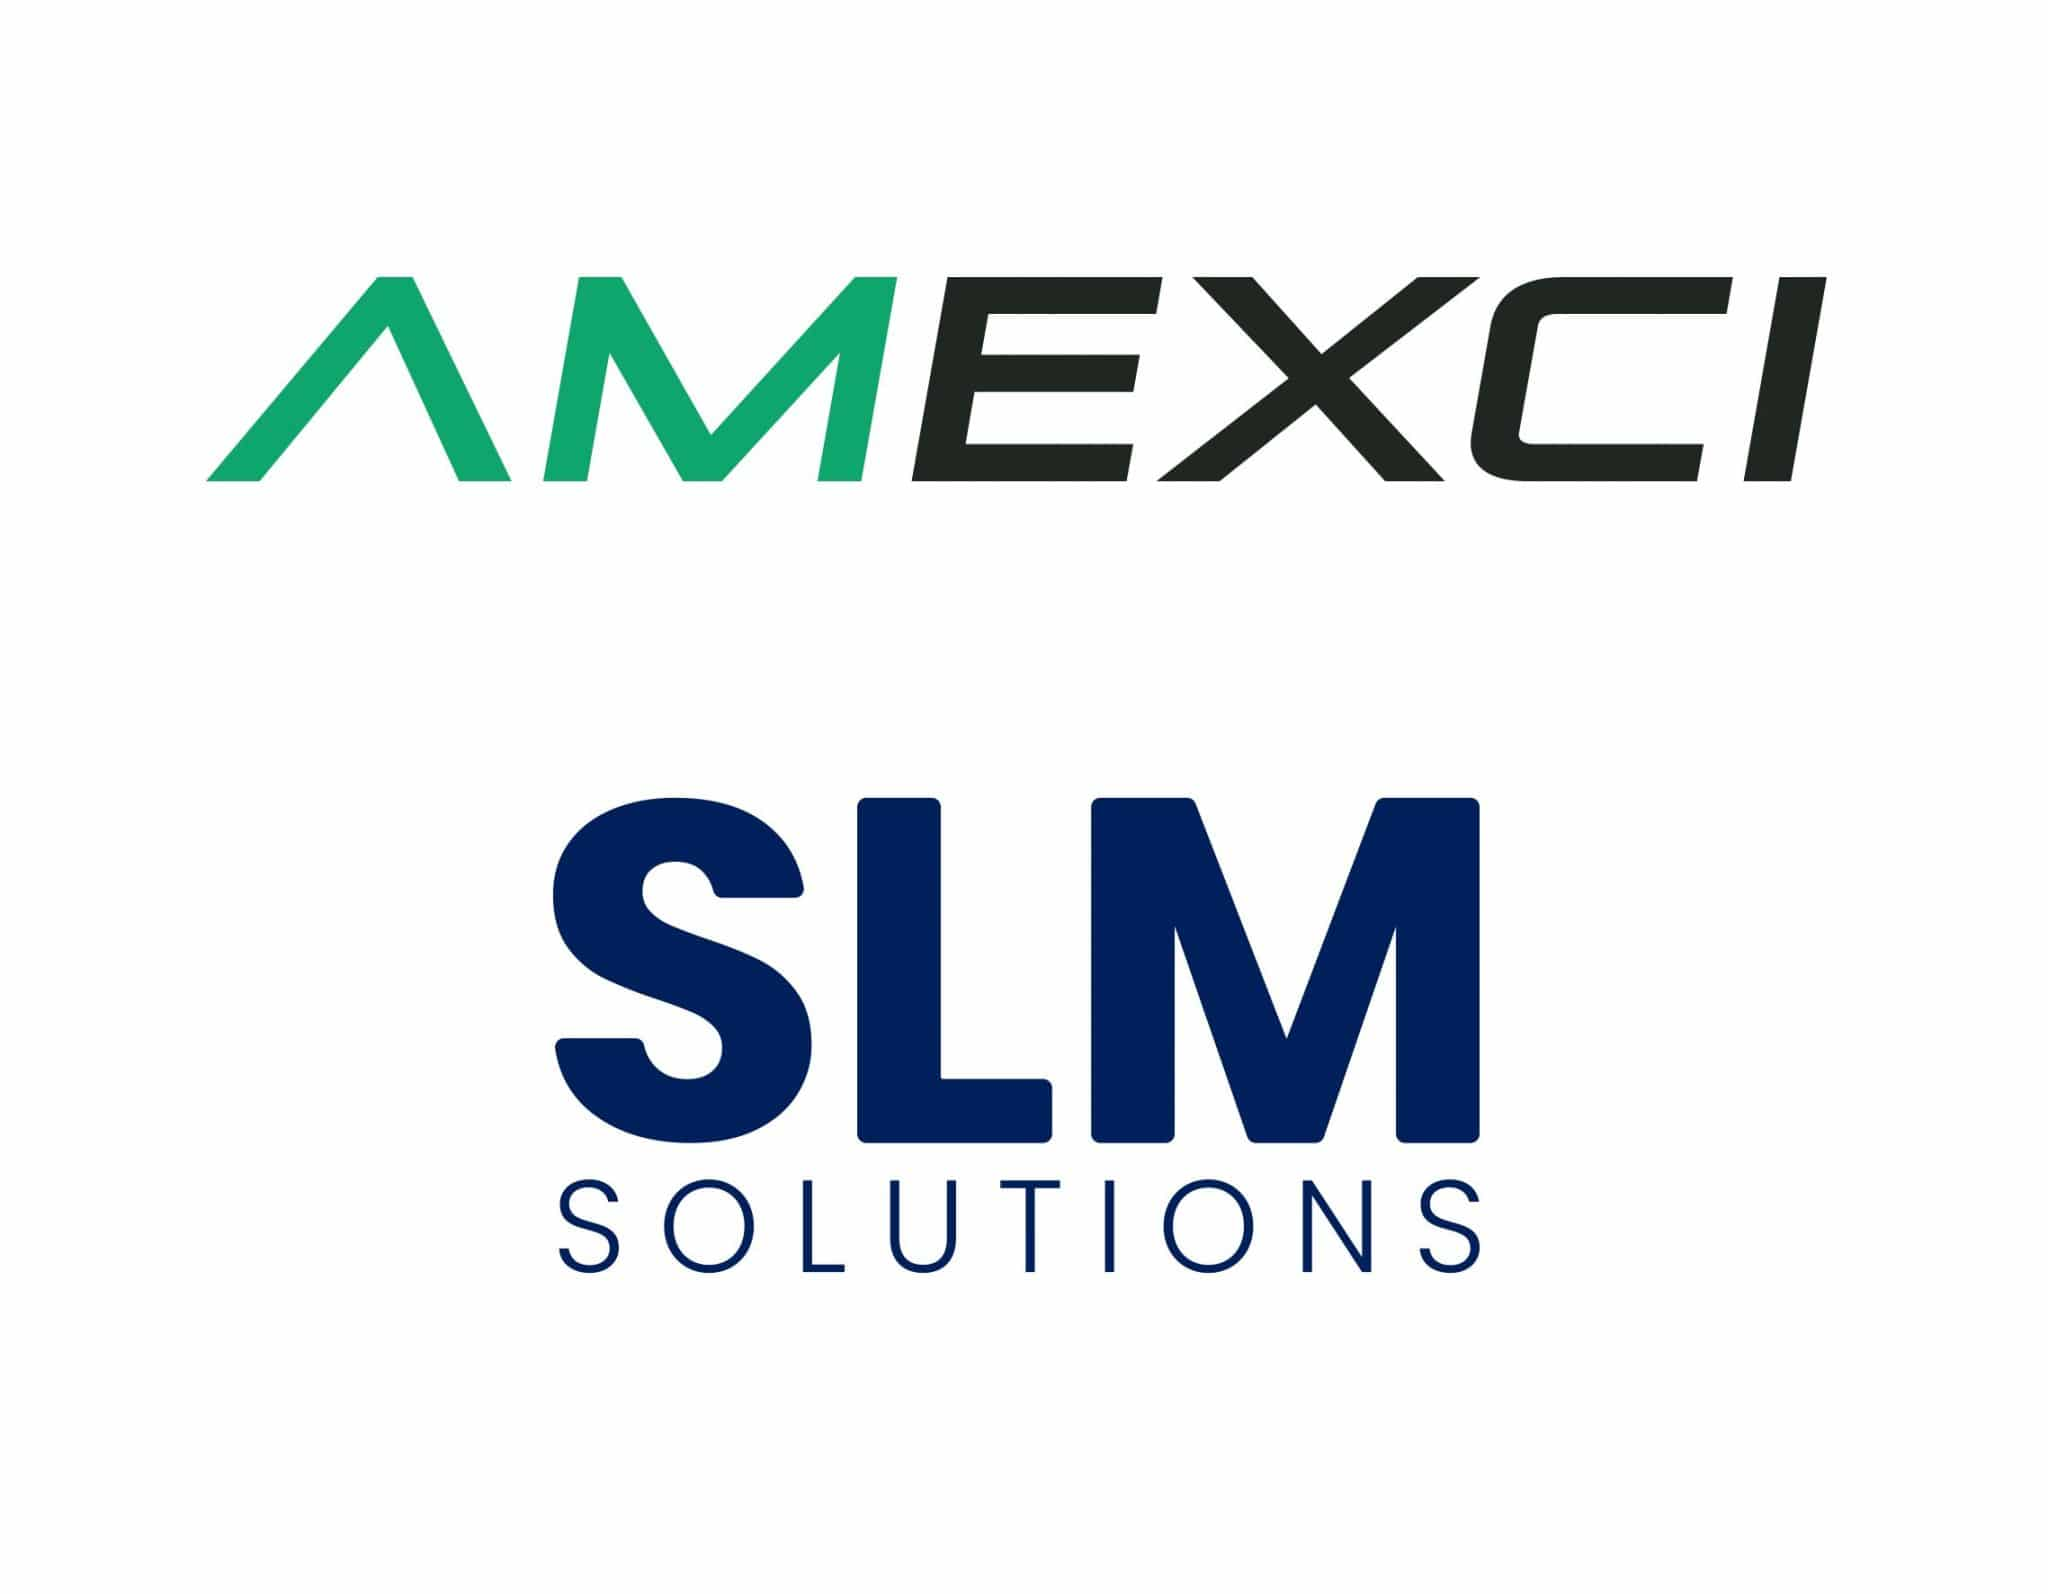 AMEXCI and SLM Solutions strengthened their partnership